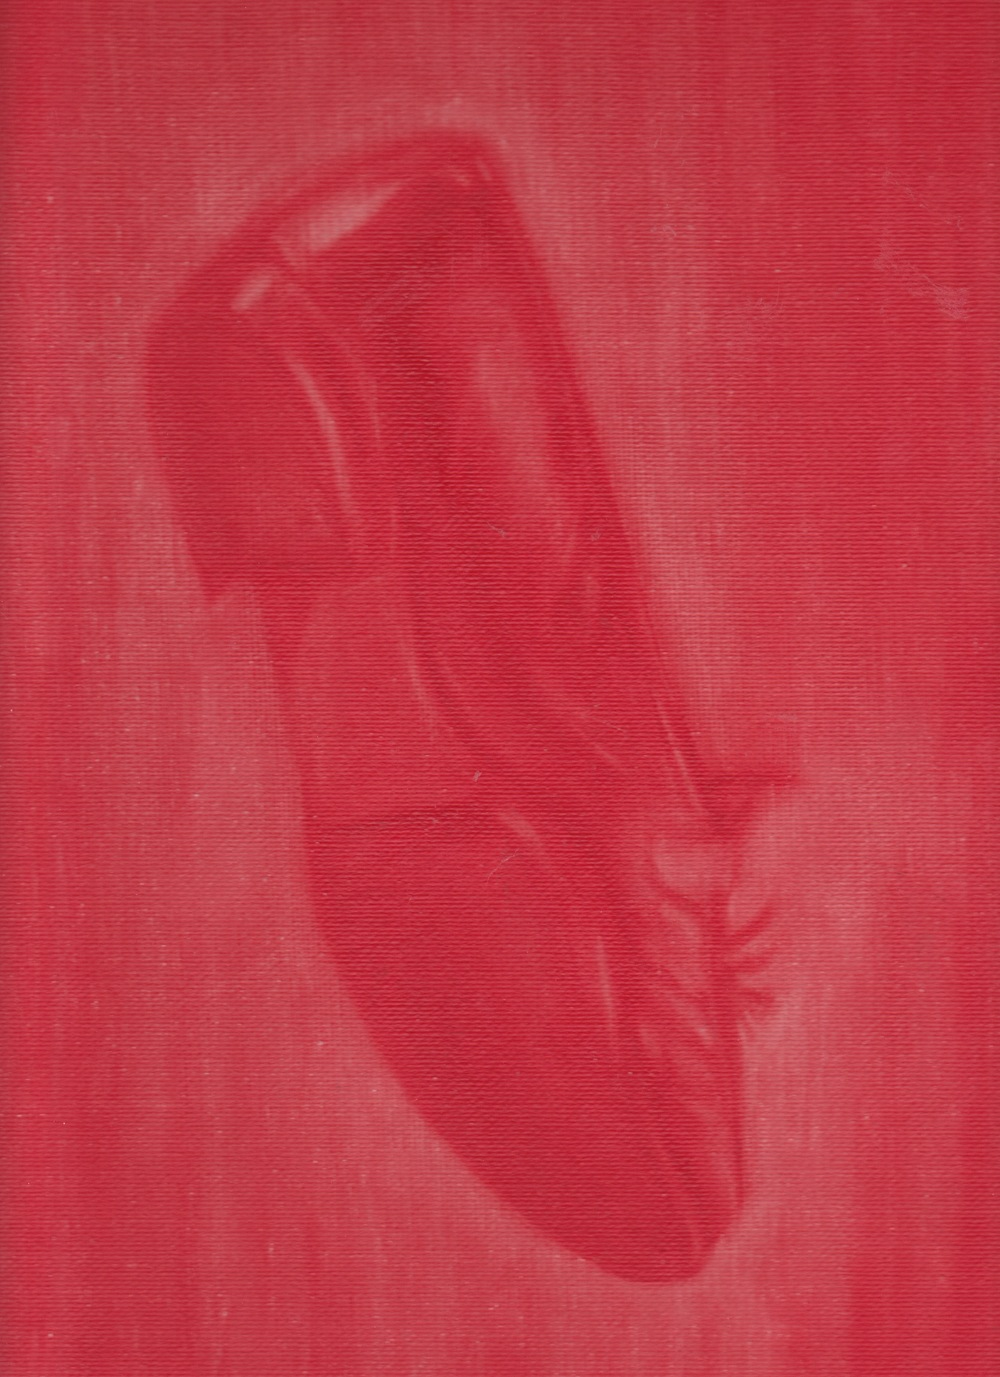 赤い靴 (The Red Shoe), 2015. Oil on Canvas.